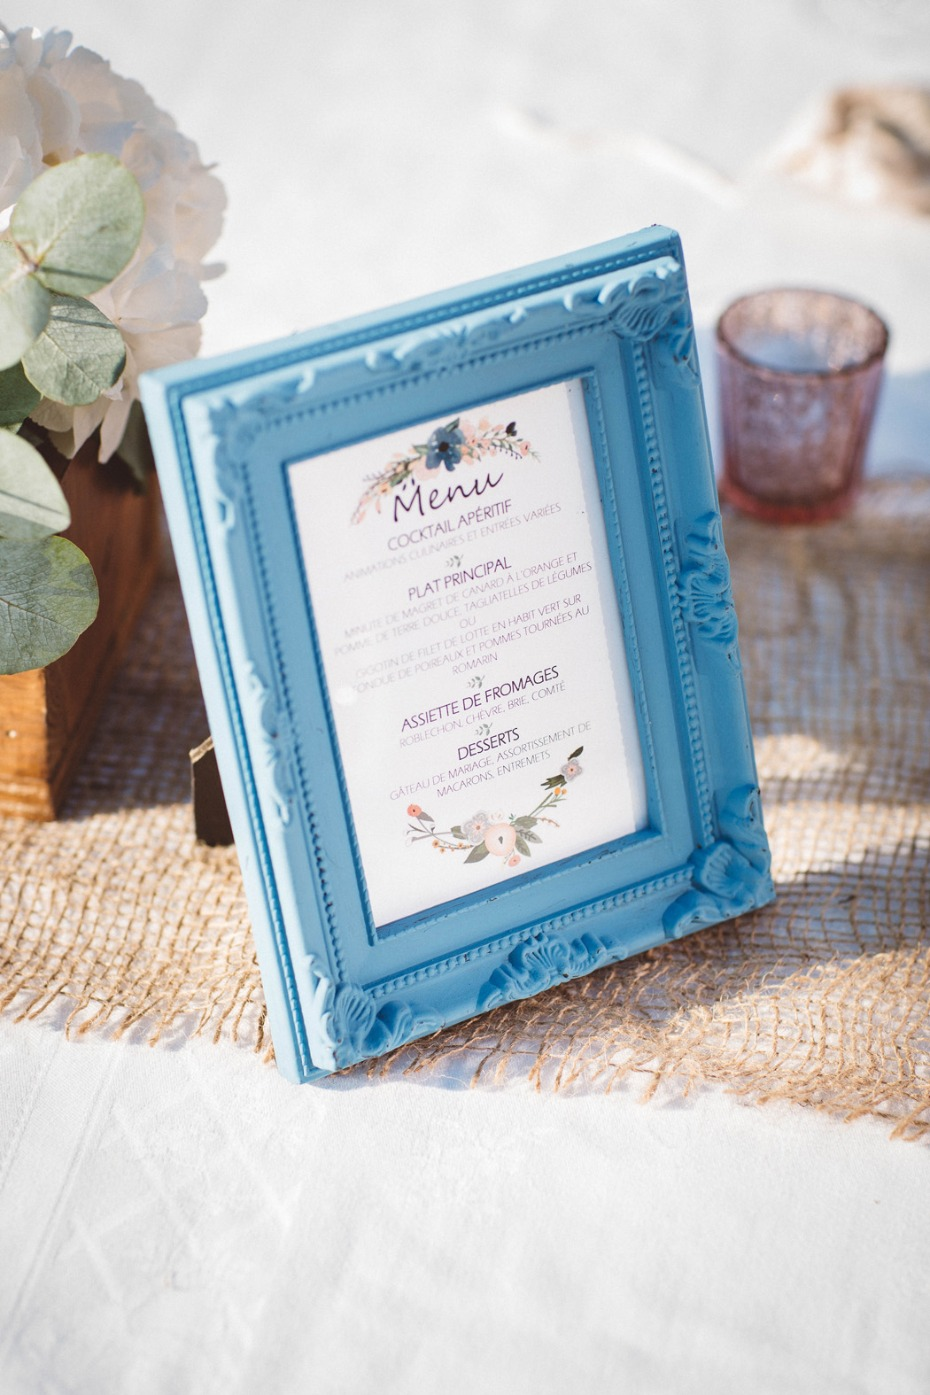 Framed menue for tables